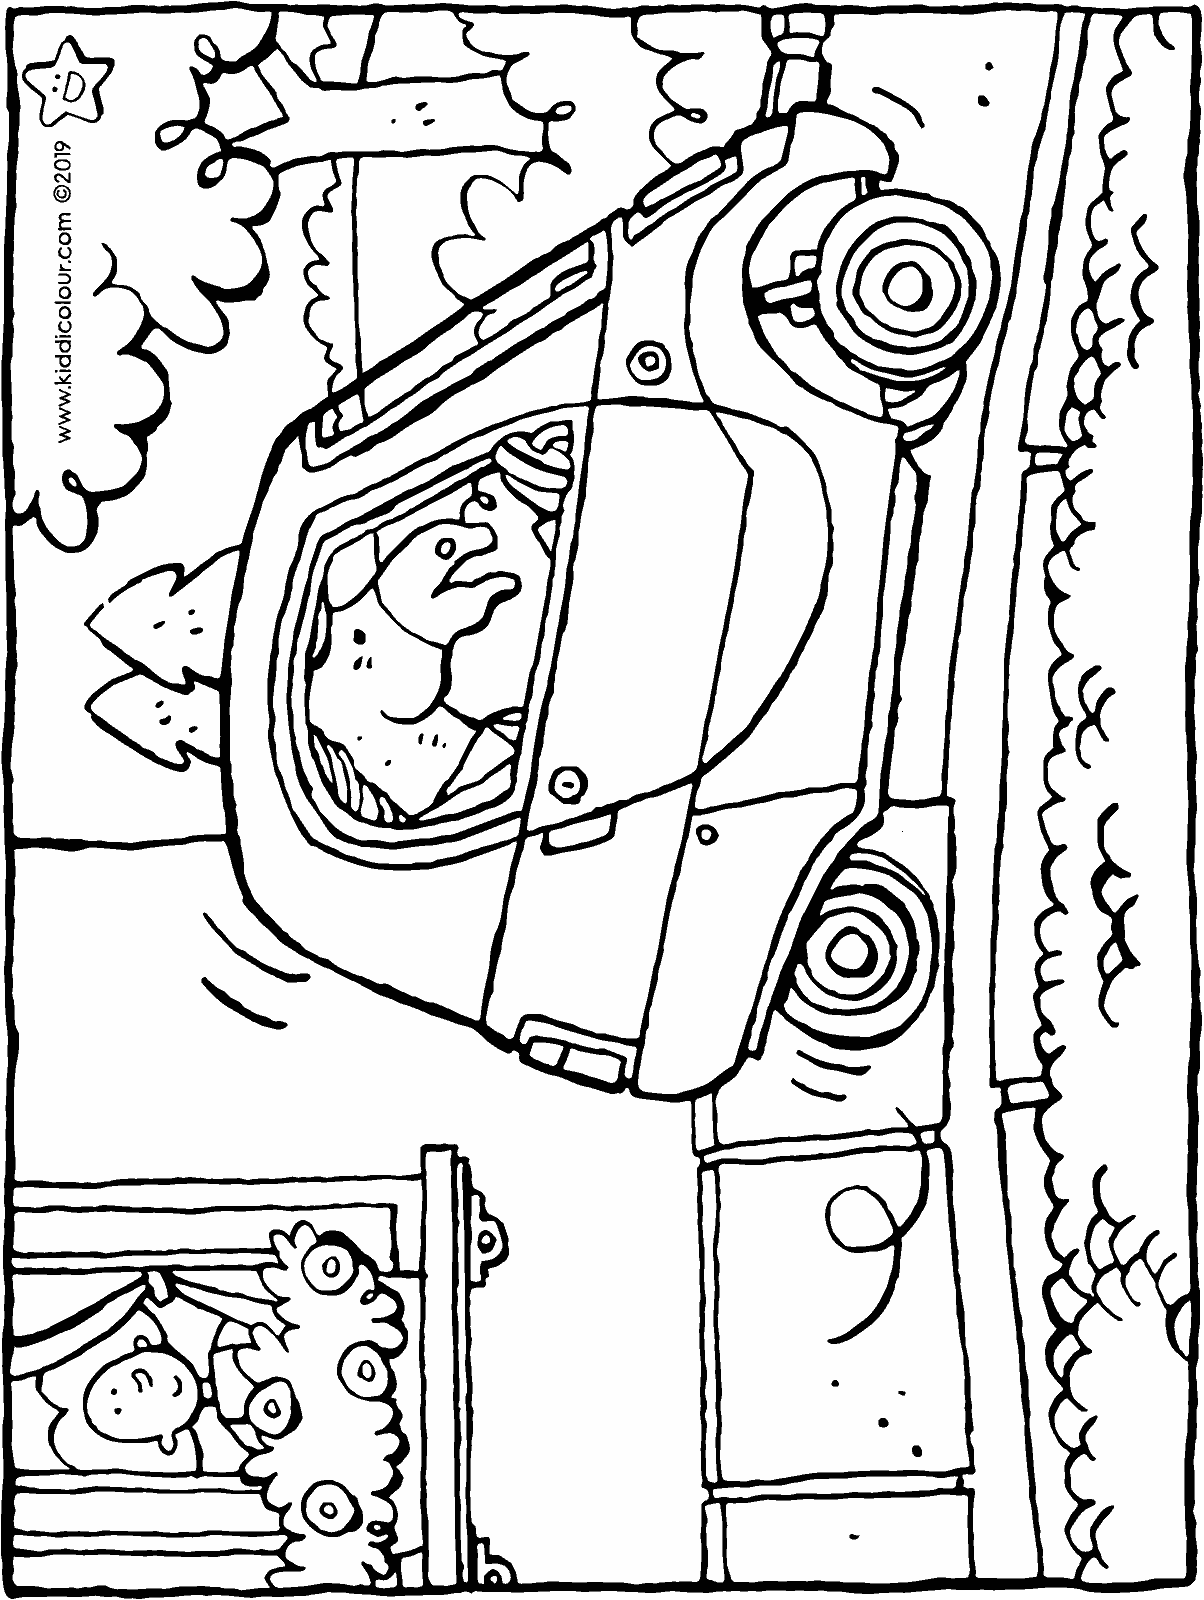 a little car drives trough the street colouring page drawing picture 01H